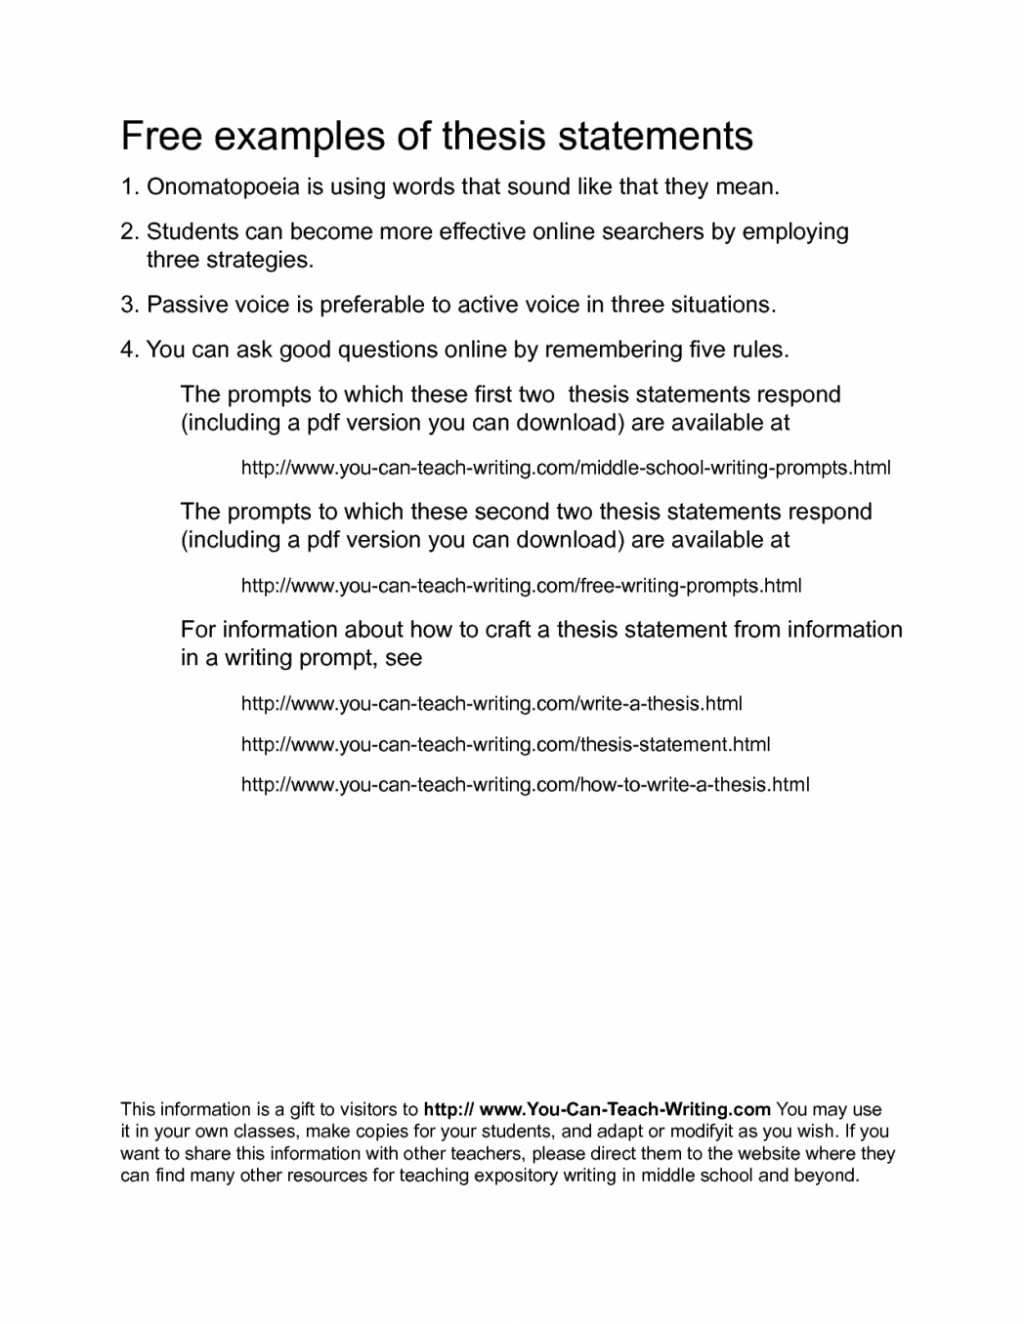 009 Essay Example Goodersuasive Topics For Middle School Thesis Abouturpose Of Statement Template Wwe Speech Uniforms Issues Education Rules Uniform Argumentative High 1048x1356 What Is The Beautiful Purpose A Persuasive Structure Format Brainly Large